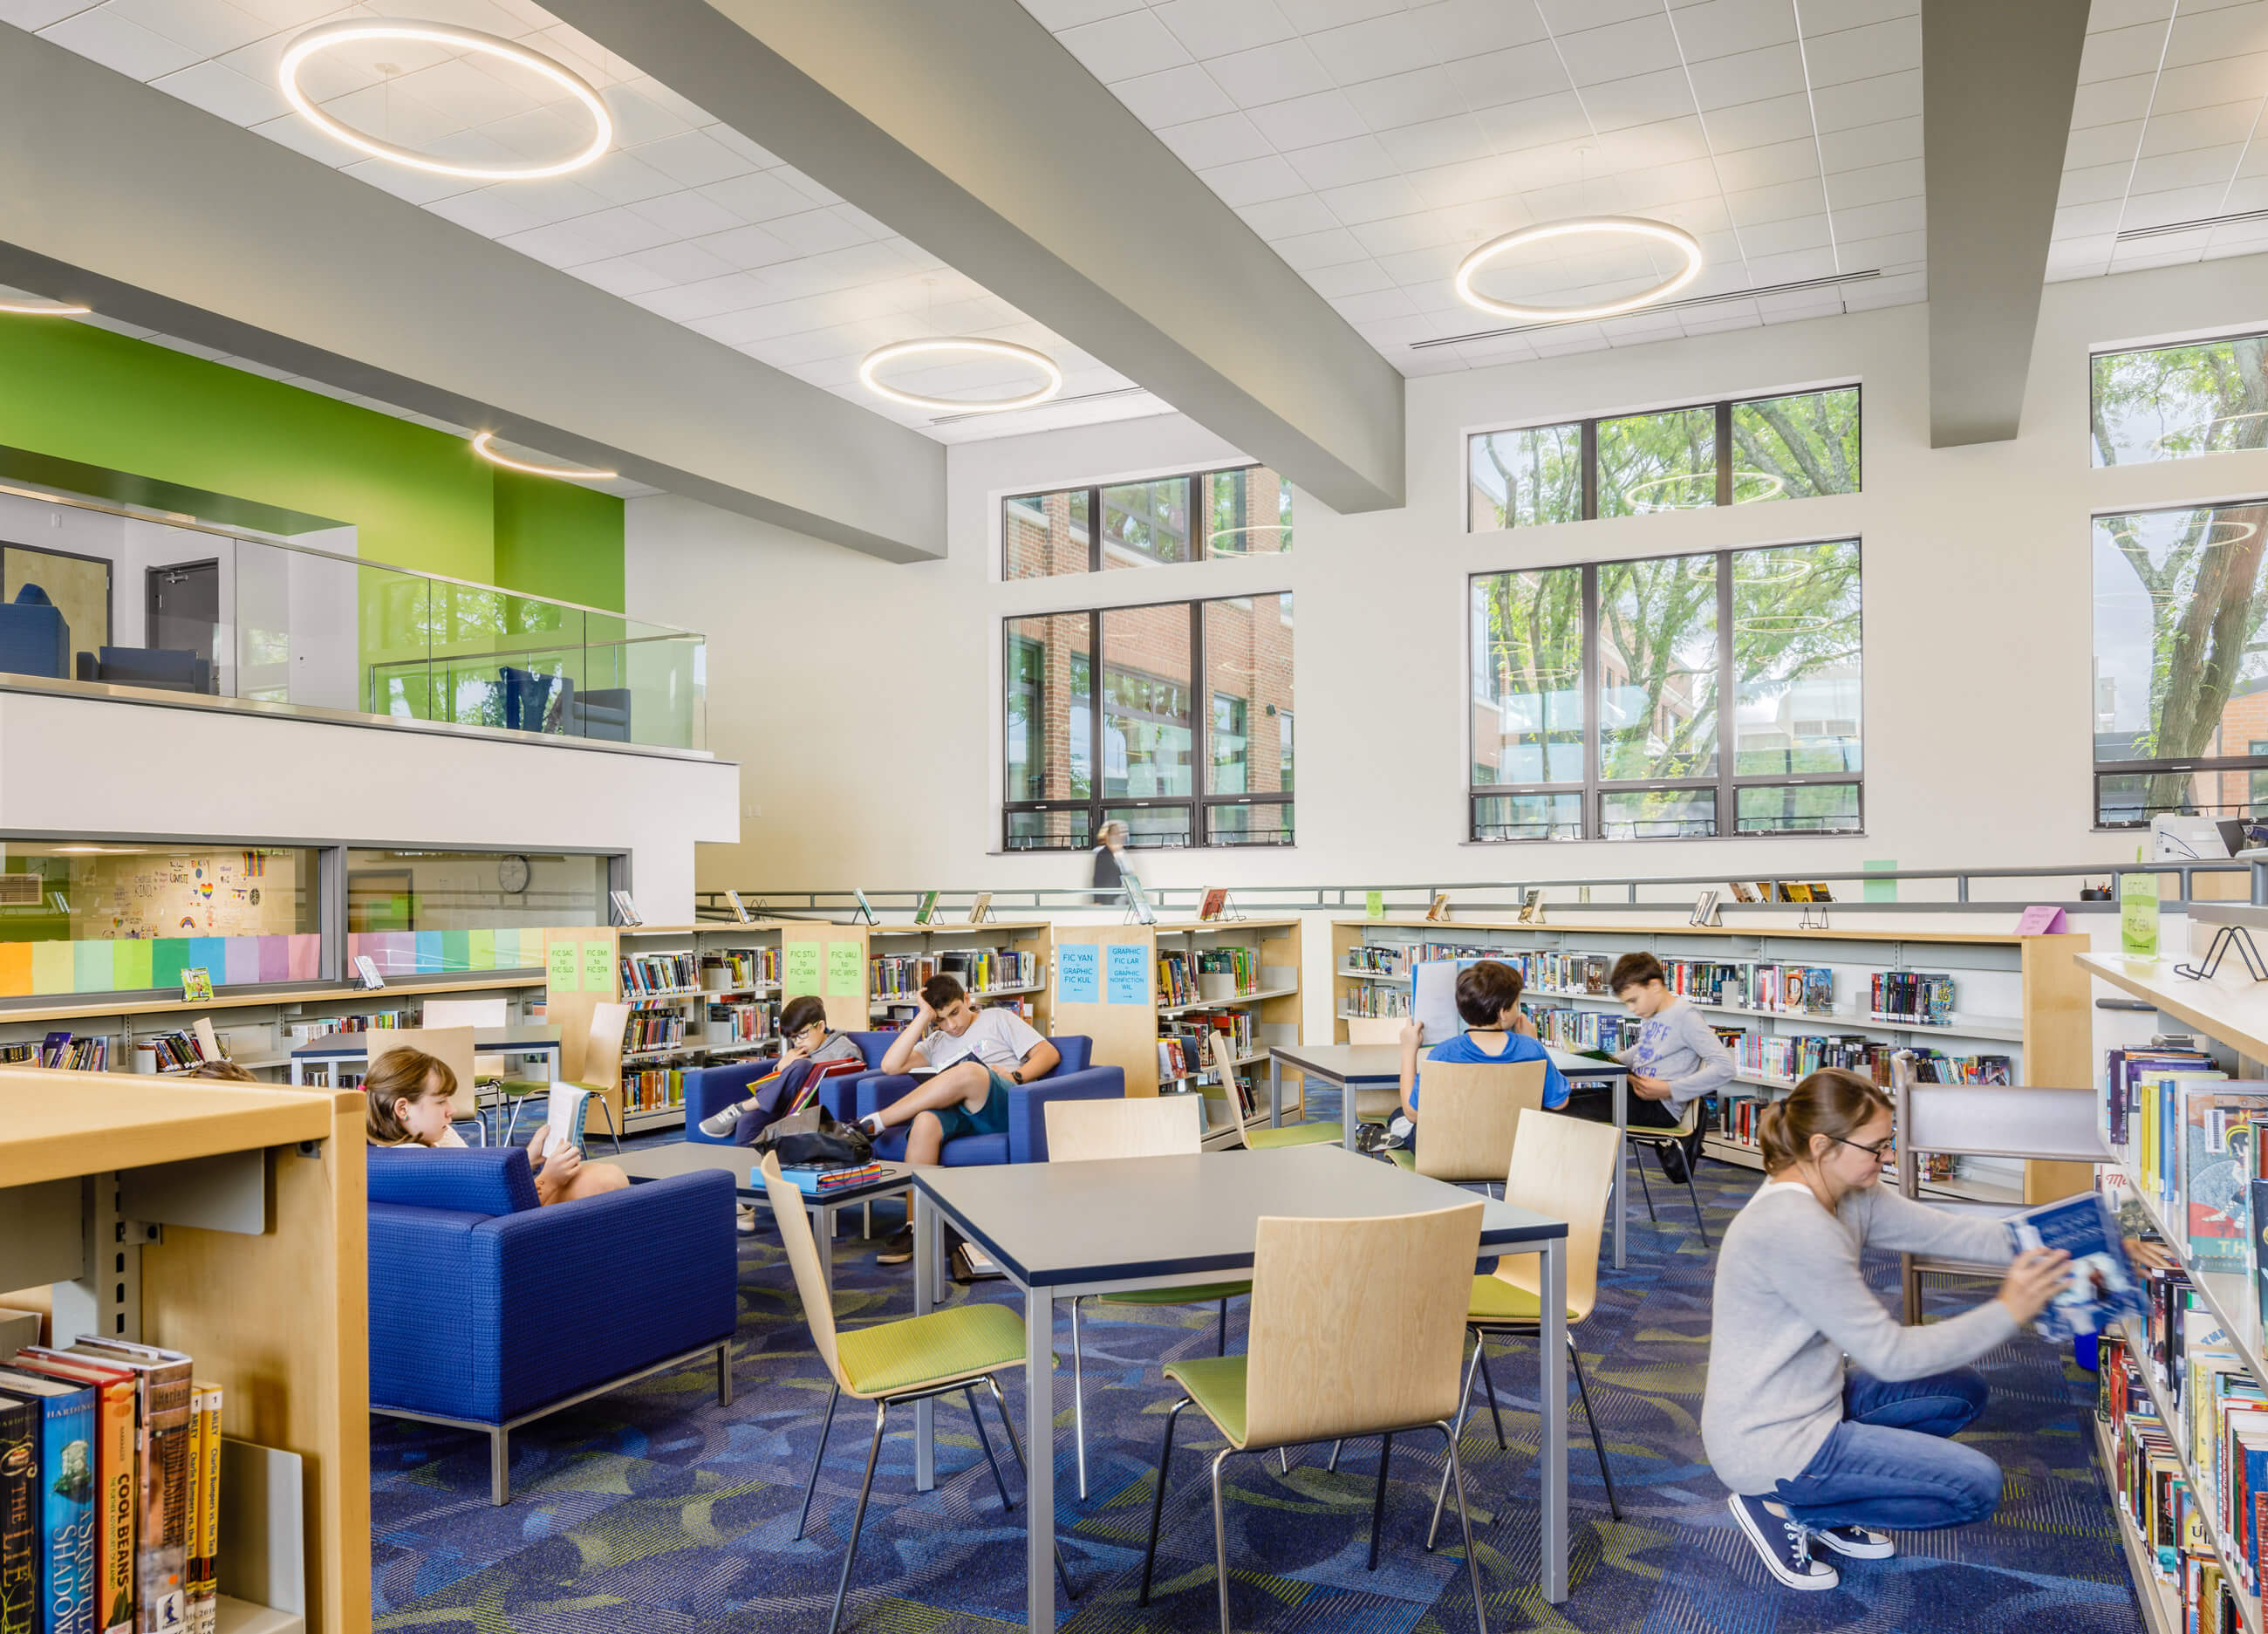 Students and teachers in different sitting areas of the media center, with bright daylight and blue and green colors.